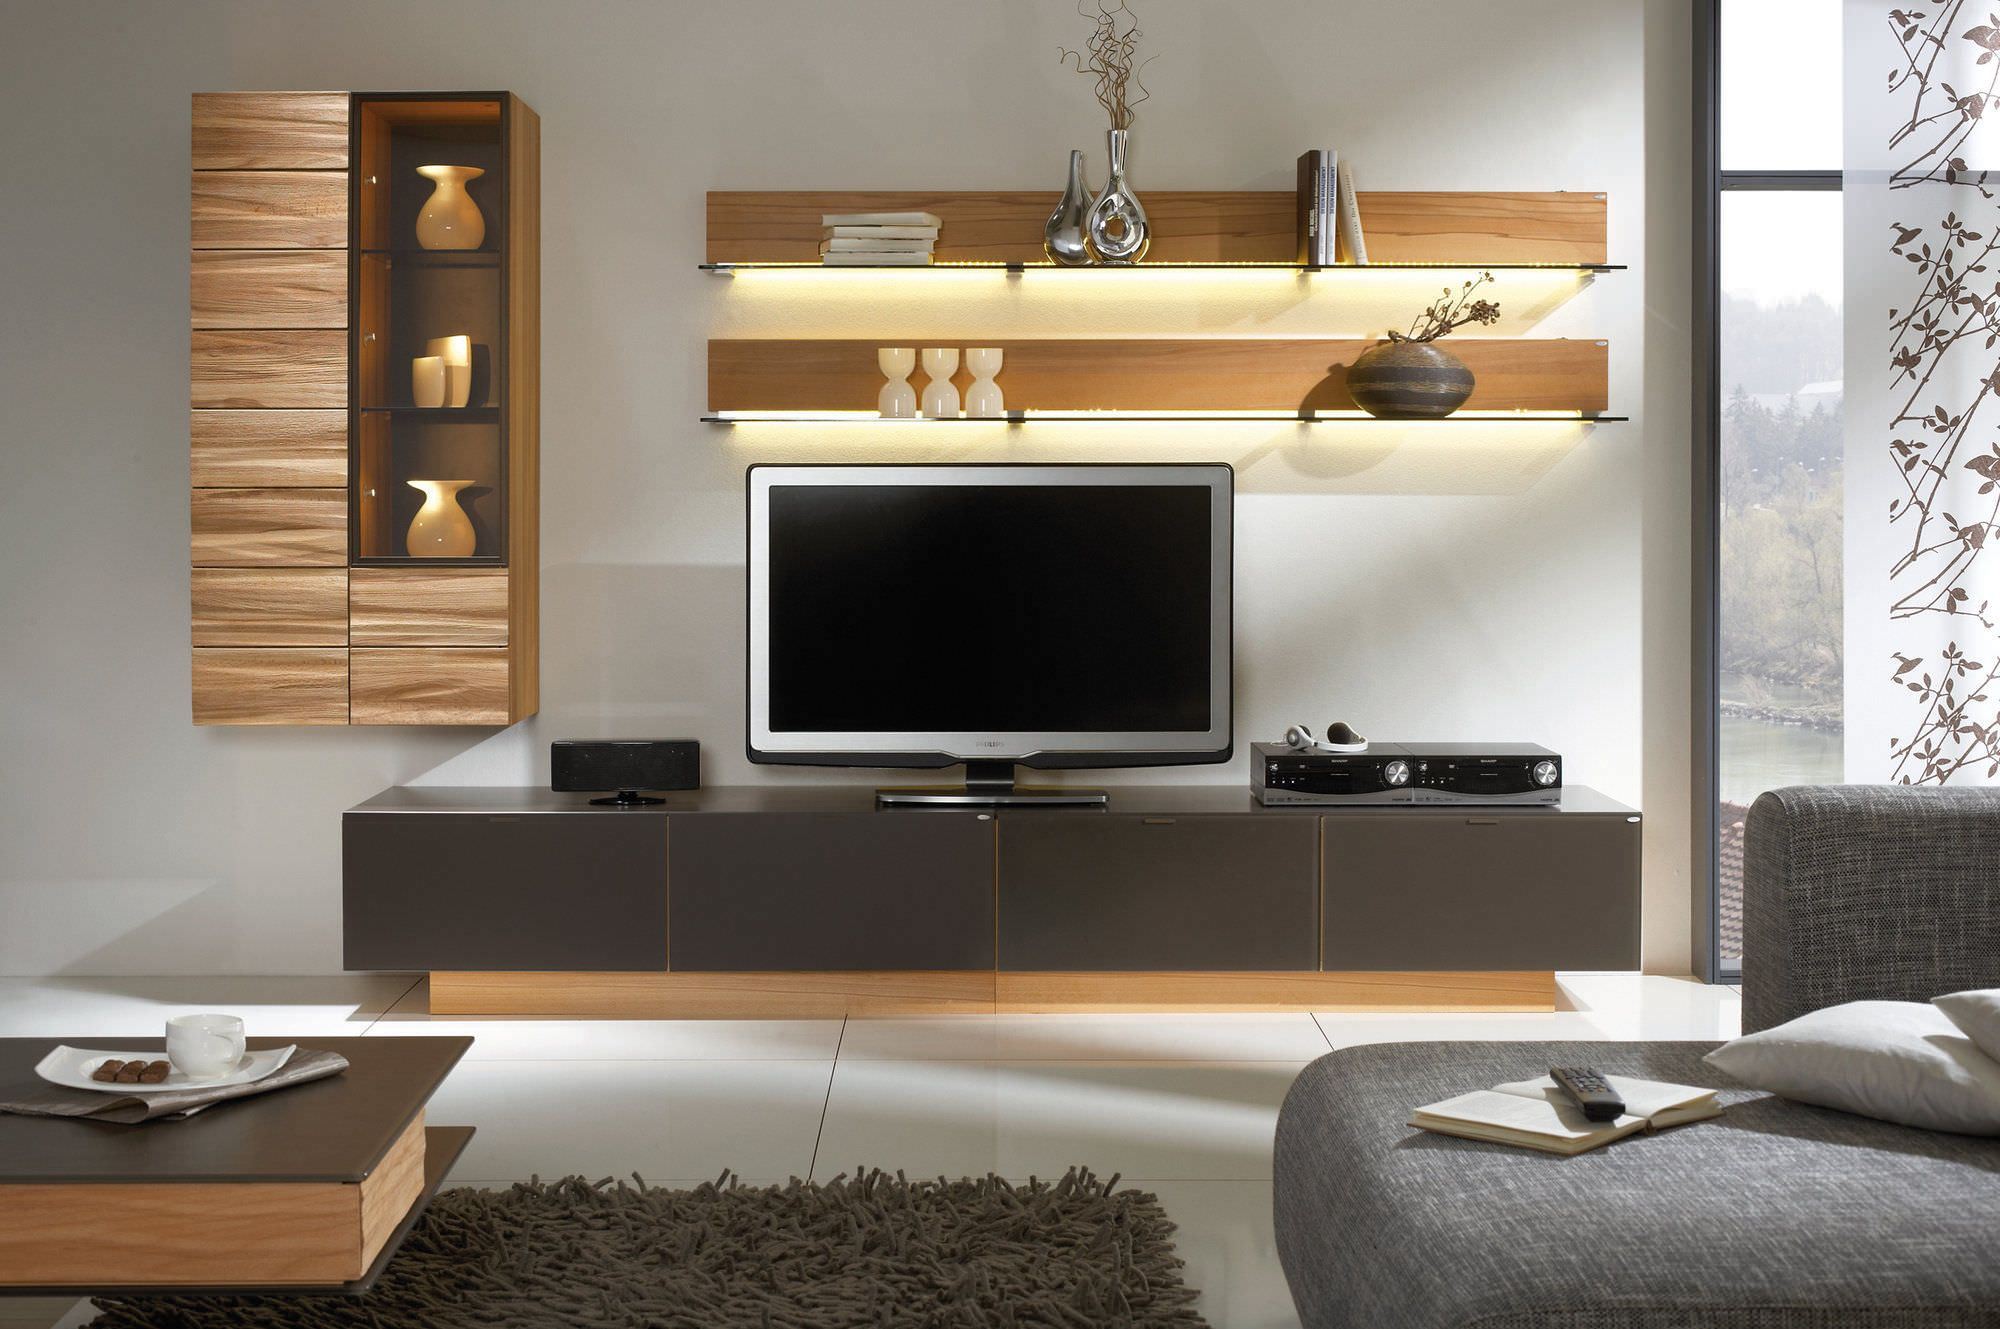 Awesome white brown wood glass cool design contemporary tv for Living room tv furniture ideas